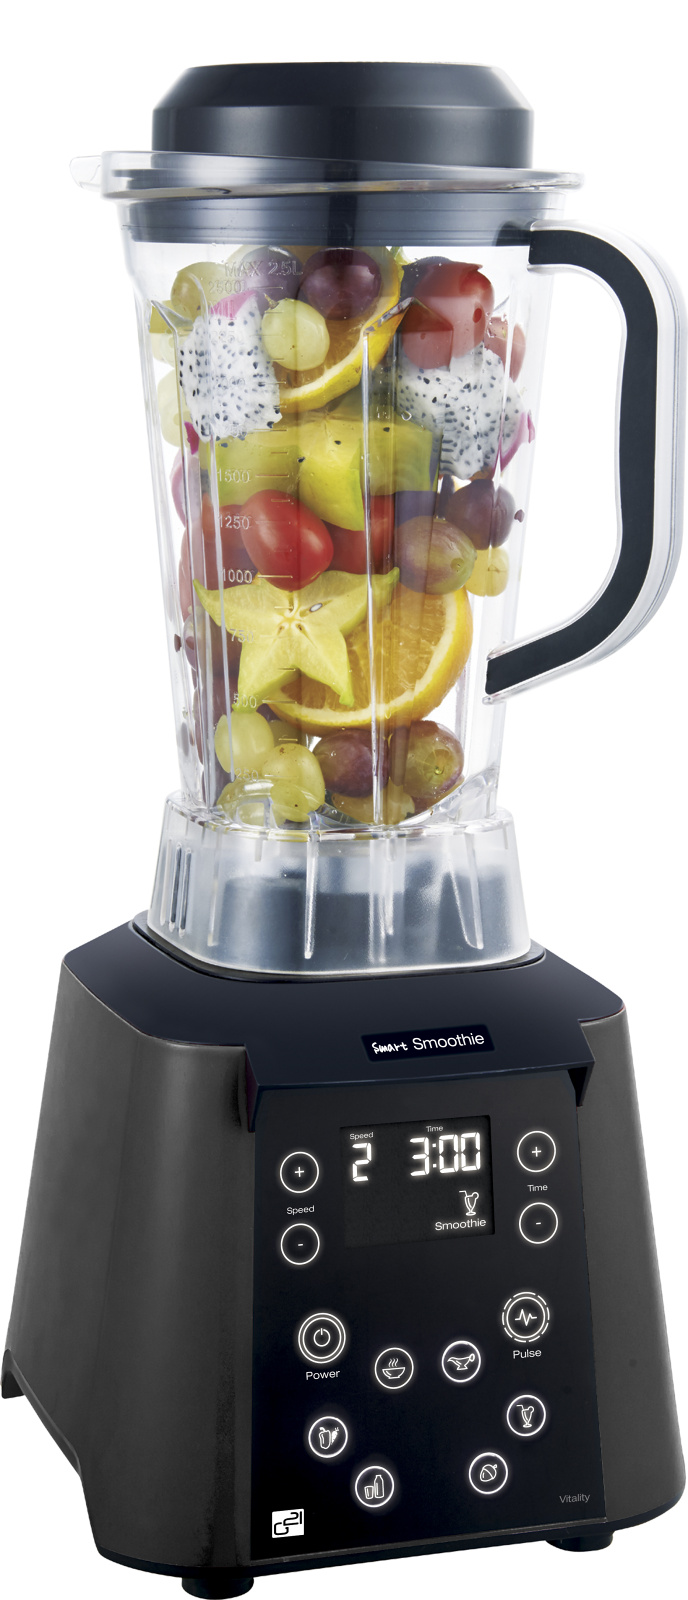 Blender G21 Smart smoothie, Vitality graphite black